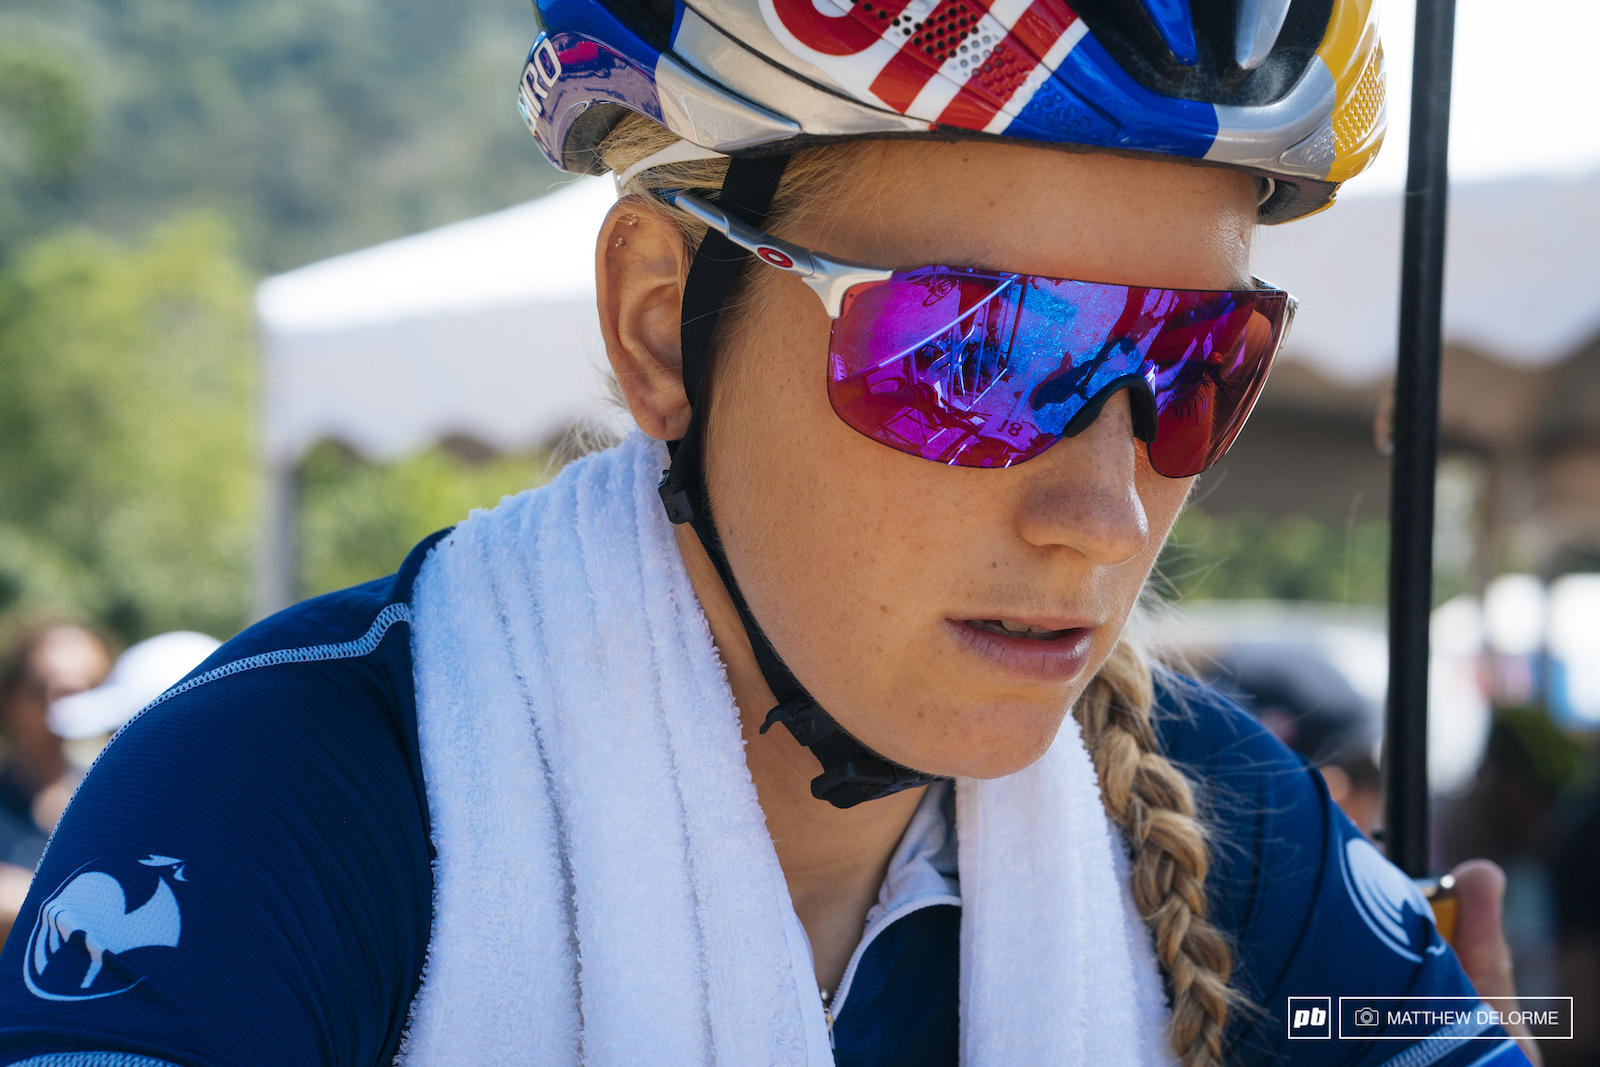 Prevot keeping cool while warming up.